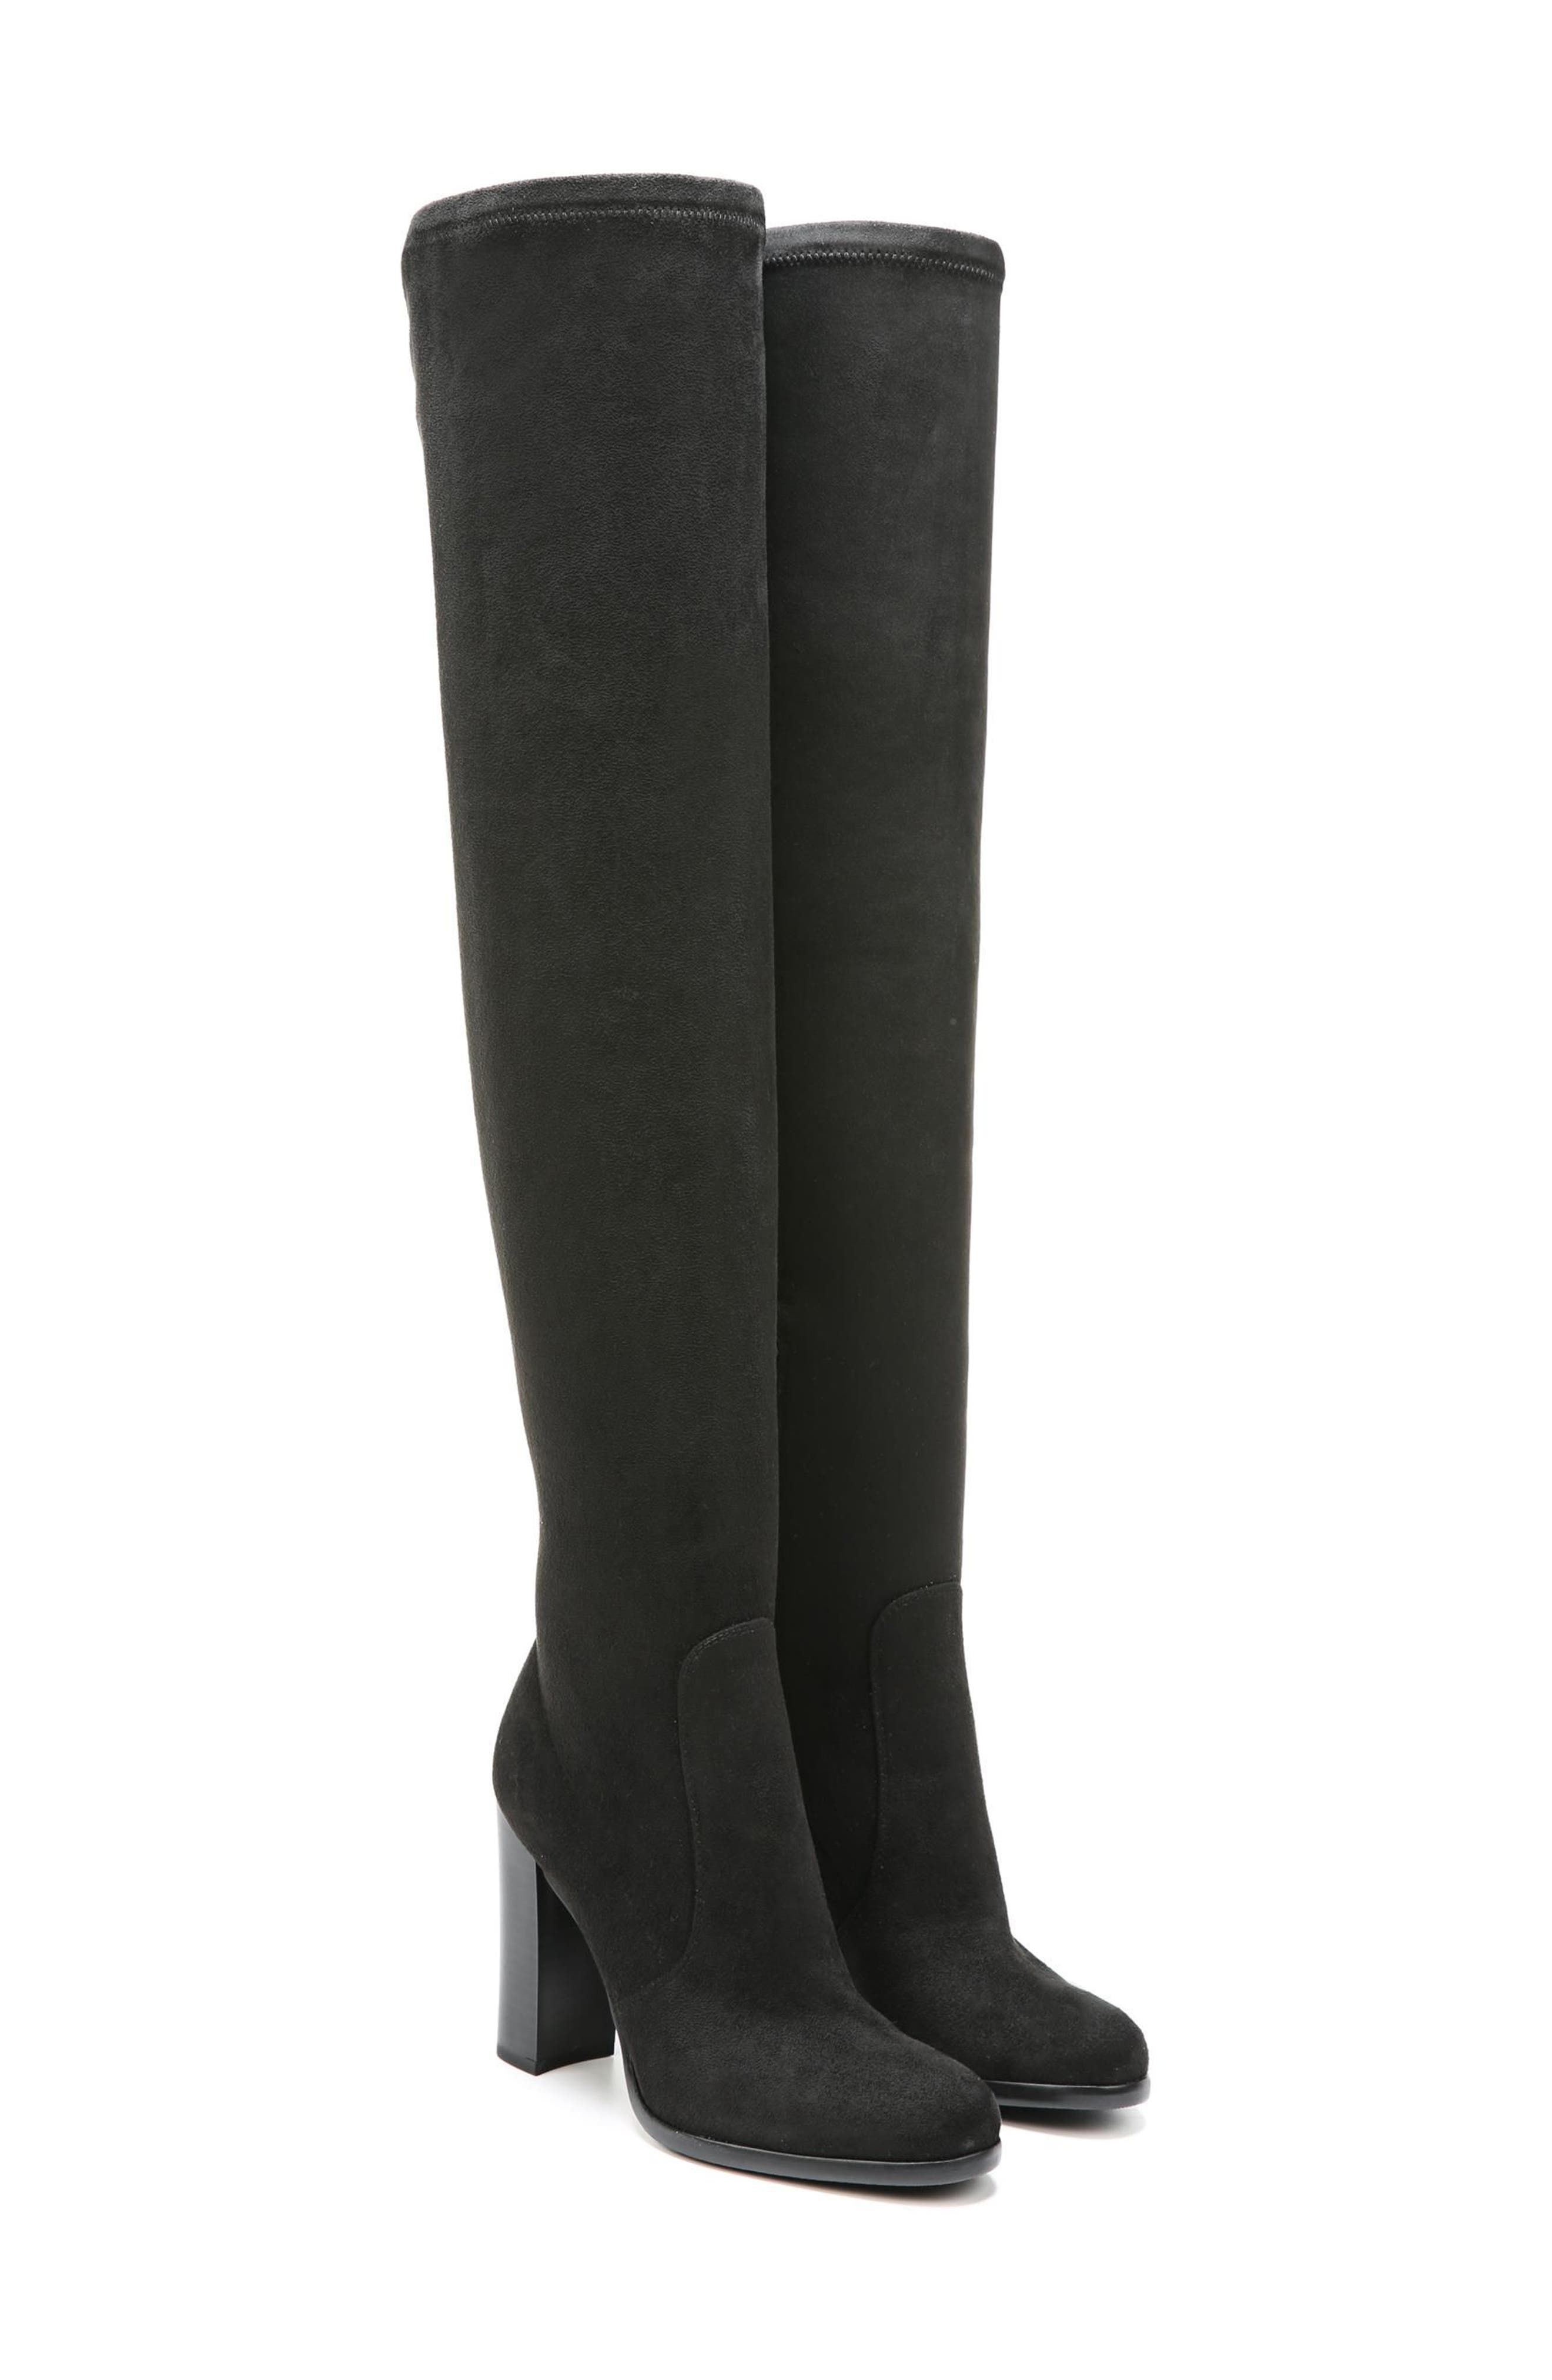 Vena 2 Over the Knee Boot,                             Alternate thumbnail 8, color,                             002